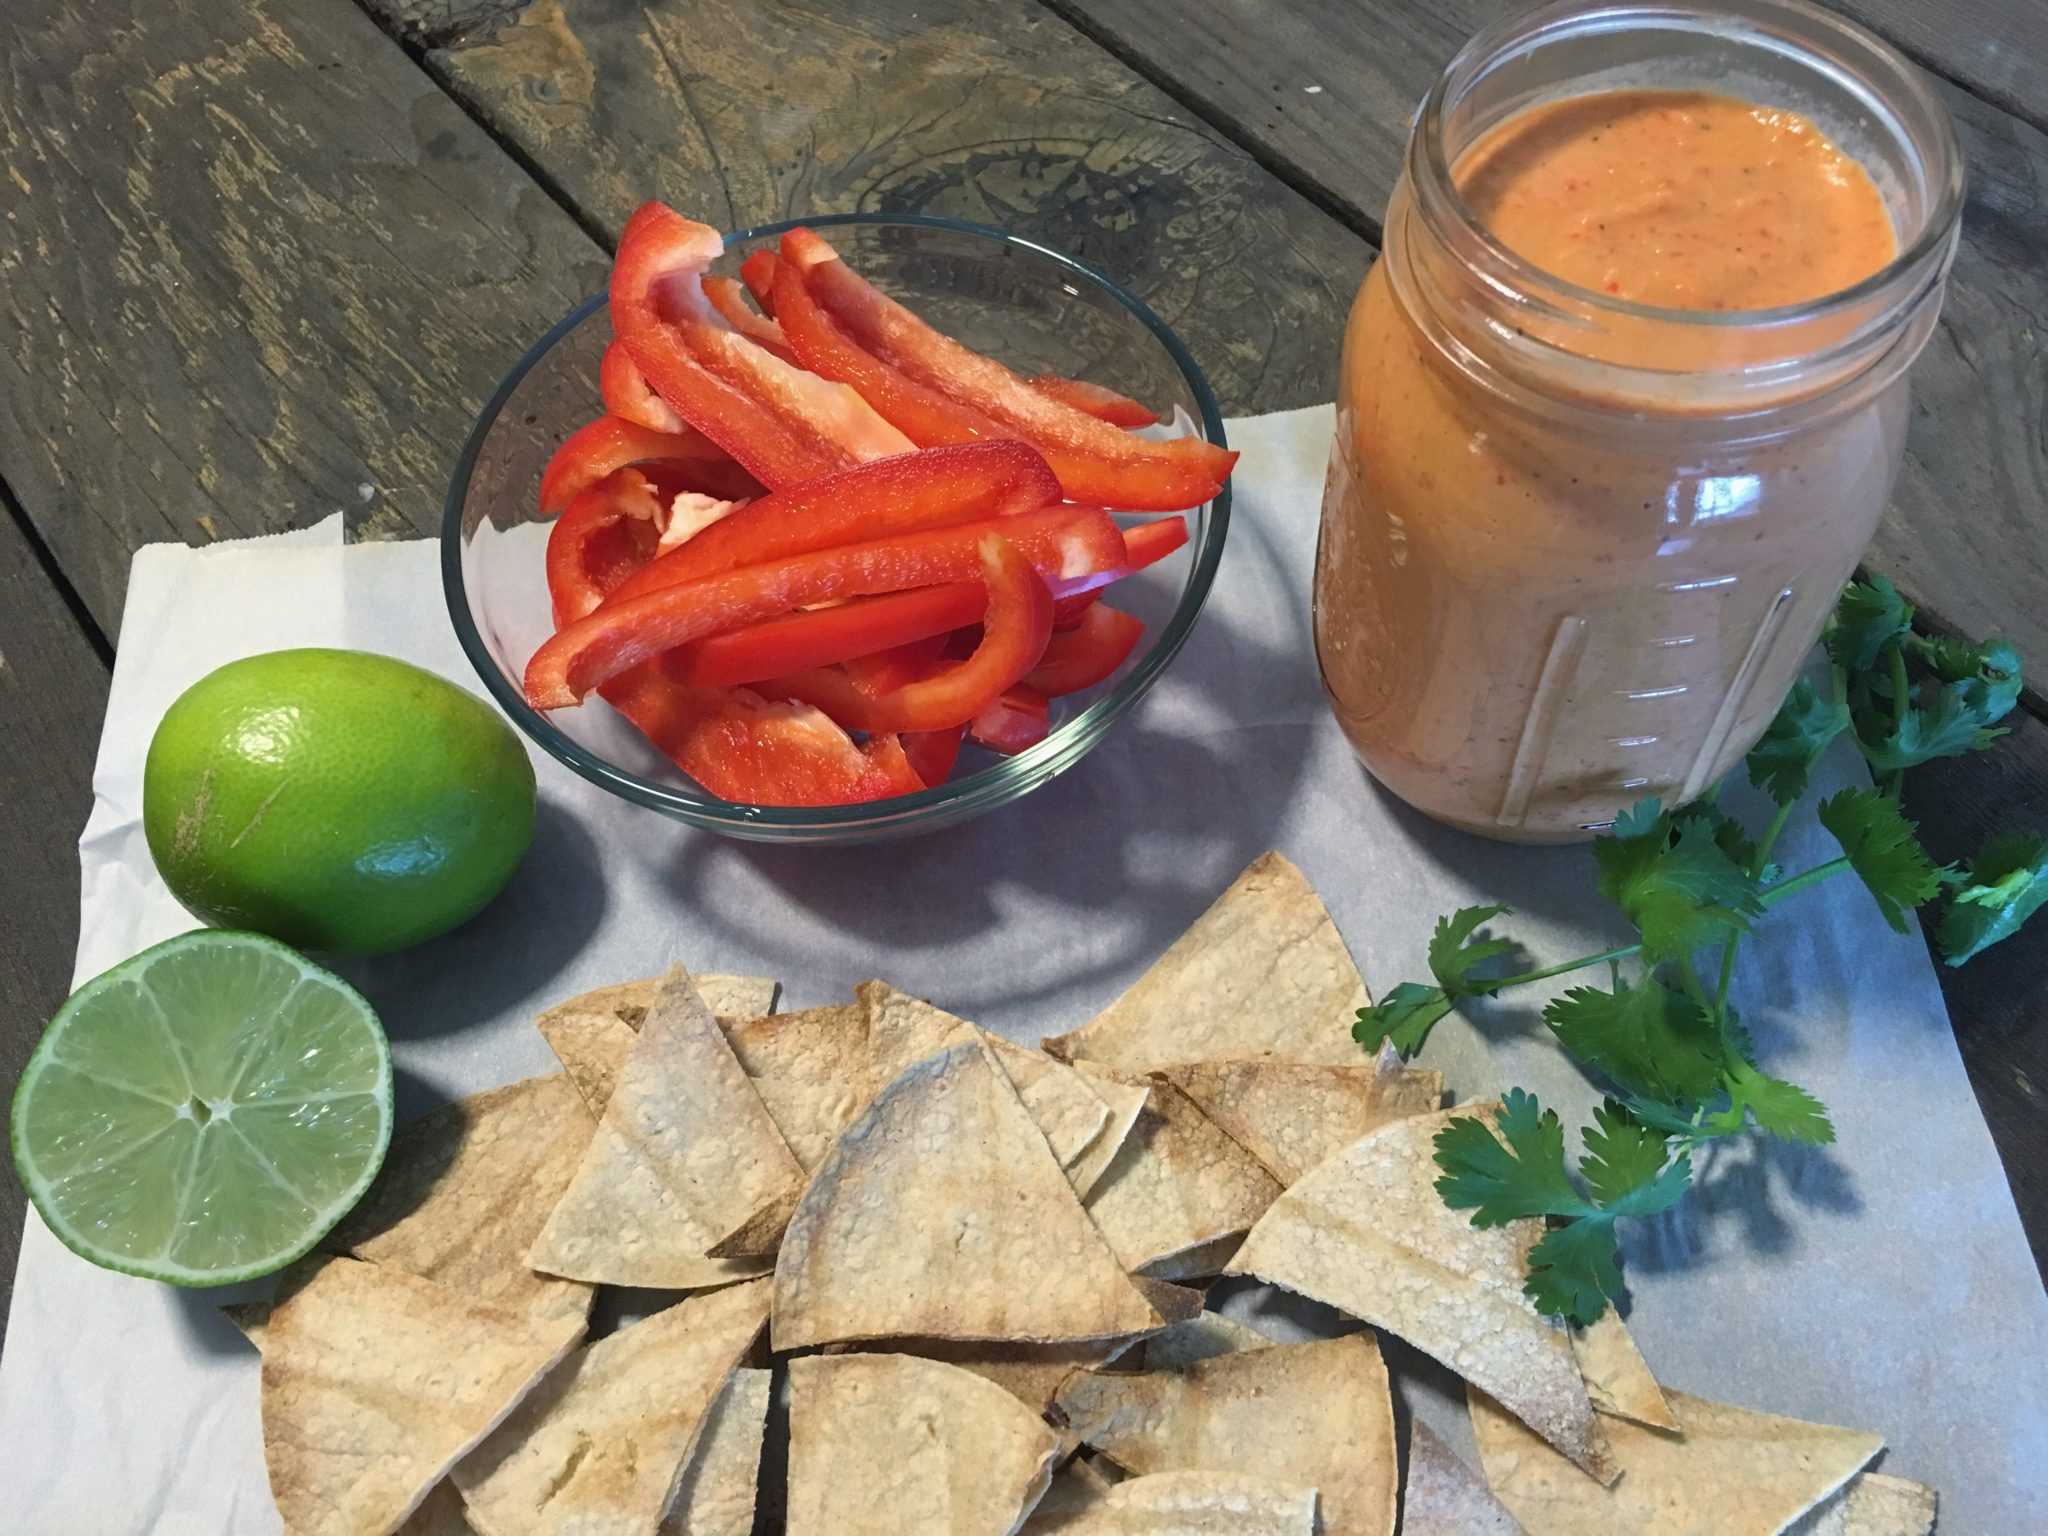 Roasted red pepper hummus fullforlife for Roasted red pepper hummus recipes